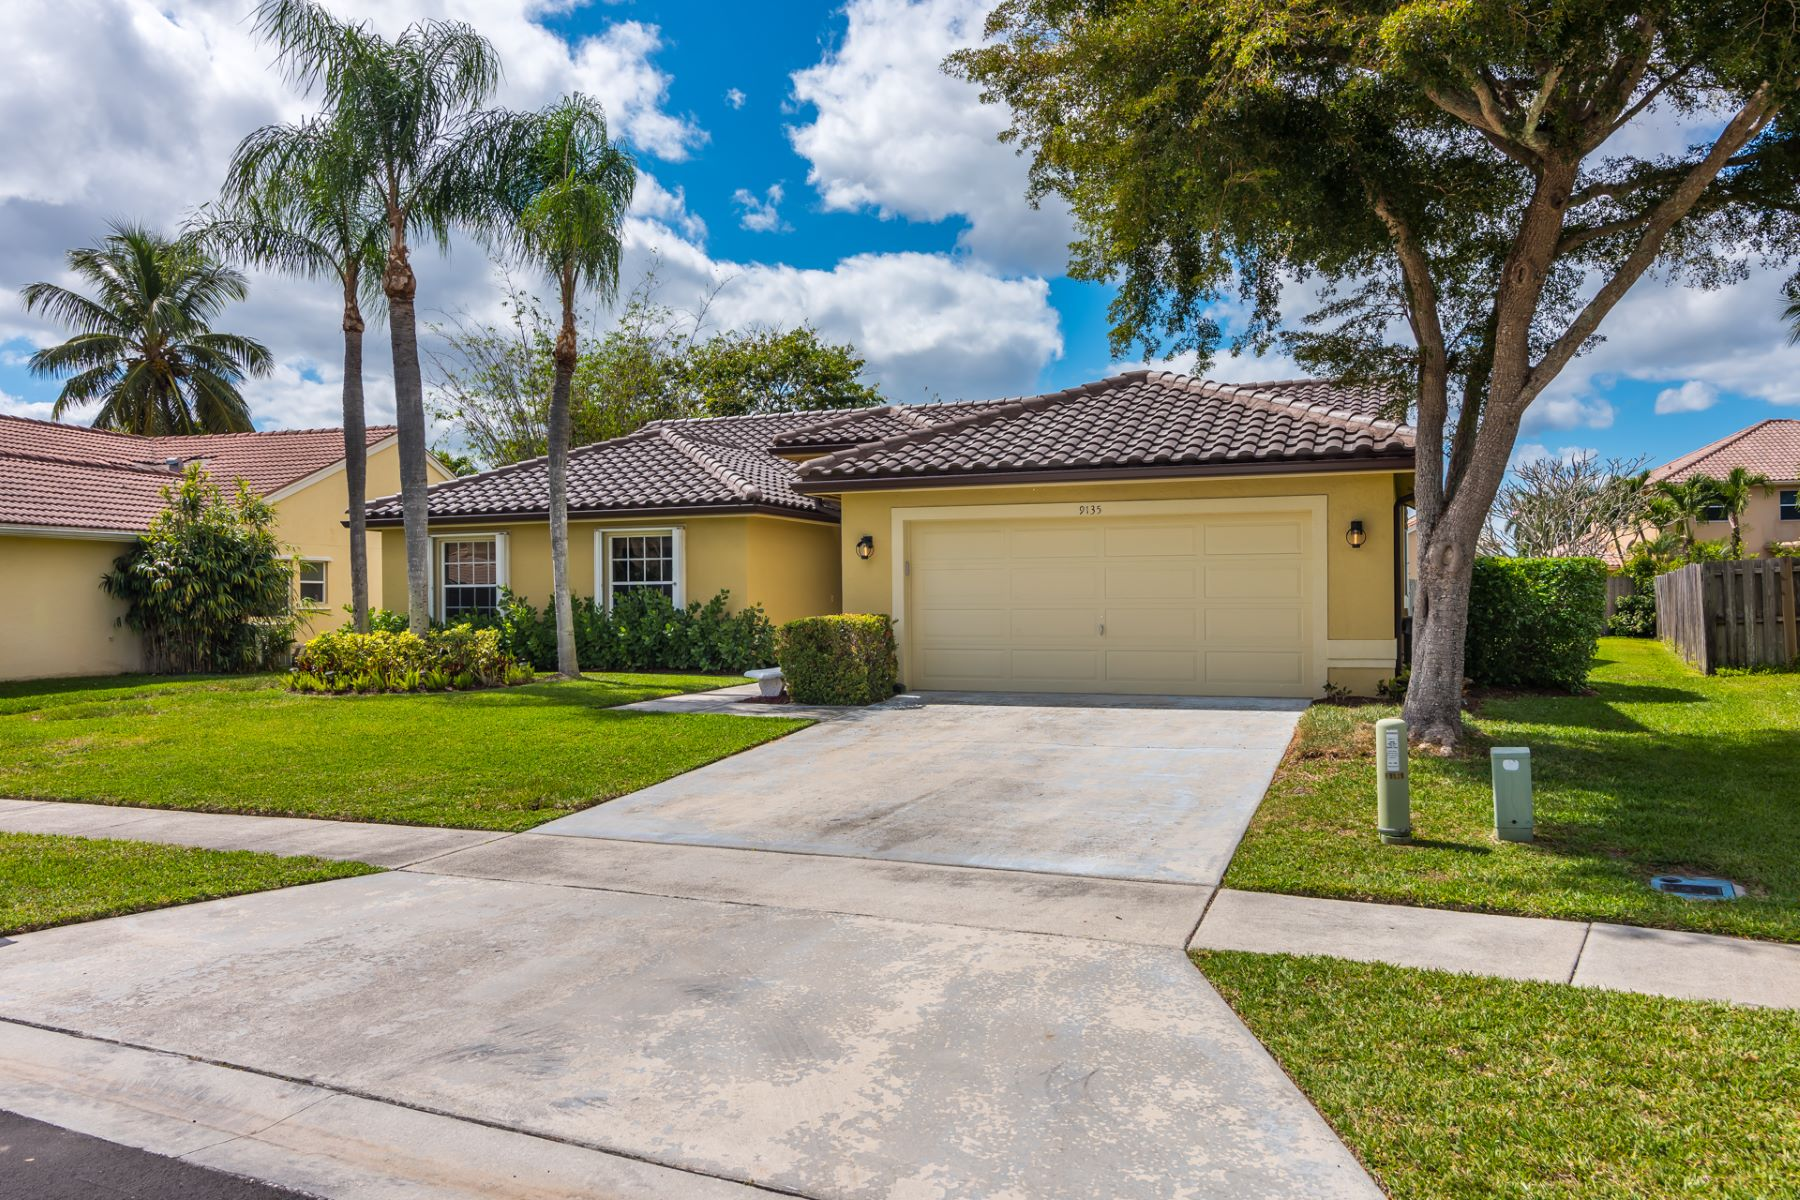 Single Family Homes for Sale at 9135 Chianti Court Boynton Beach, Florida 33472 United States